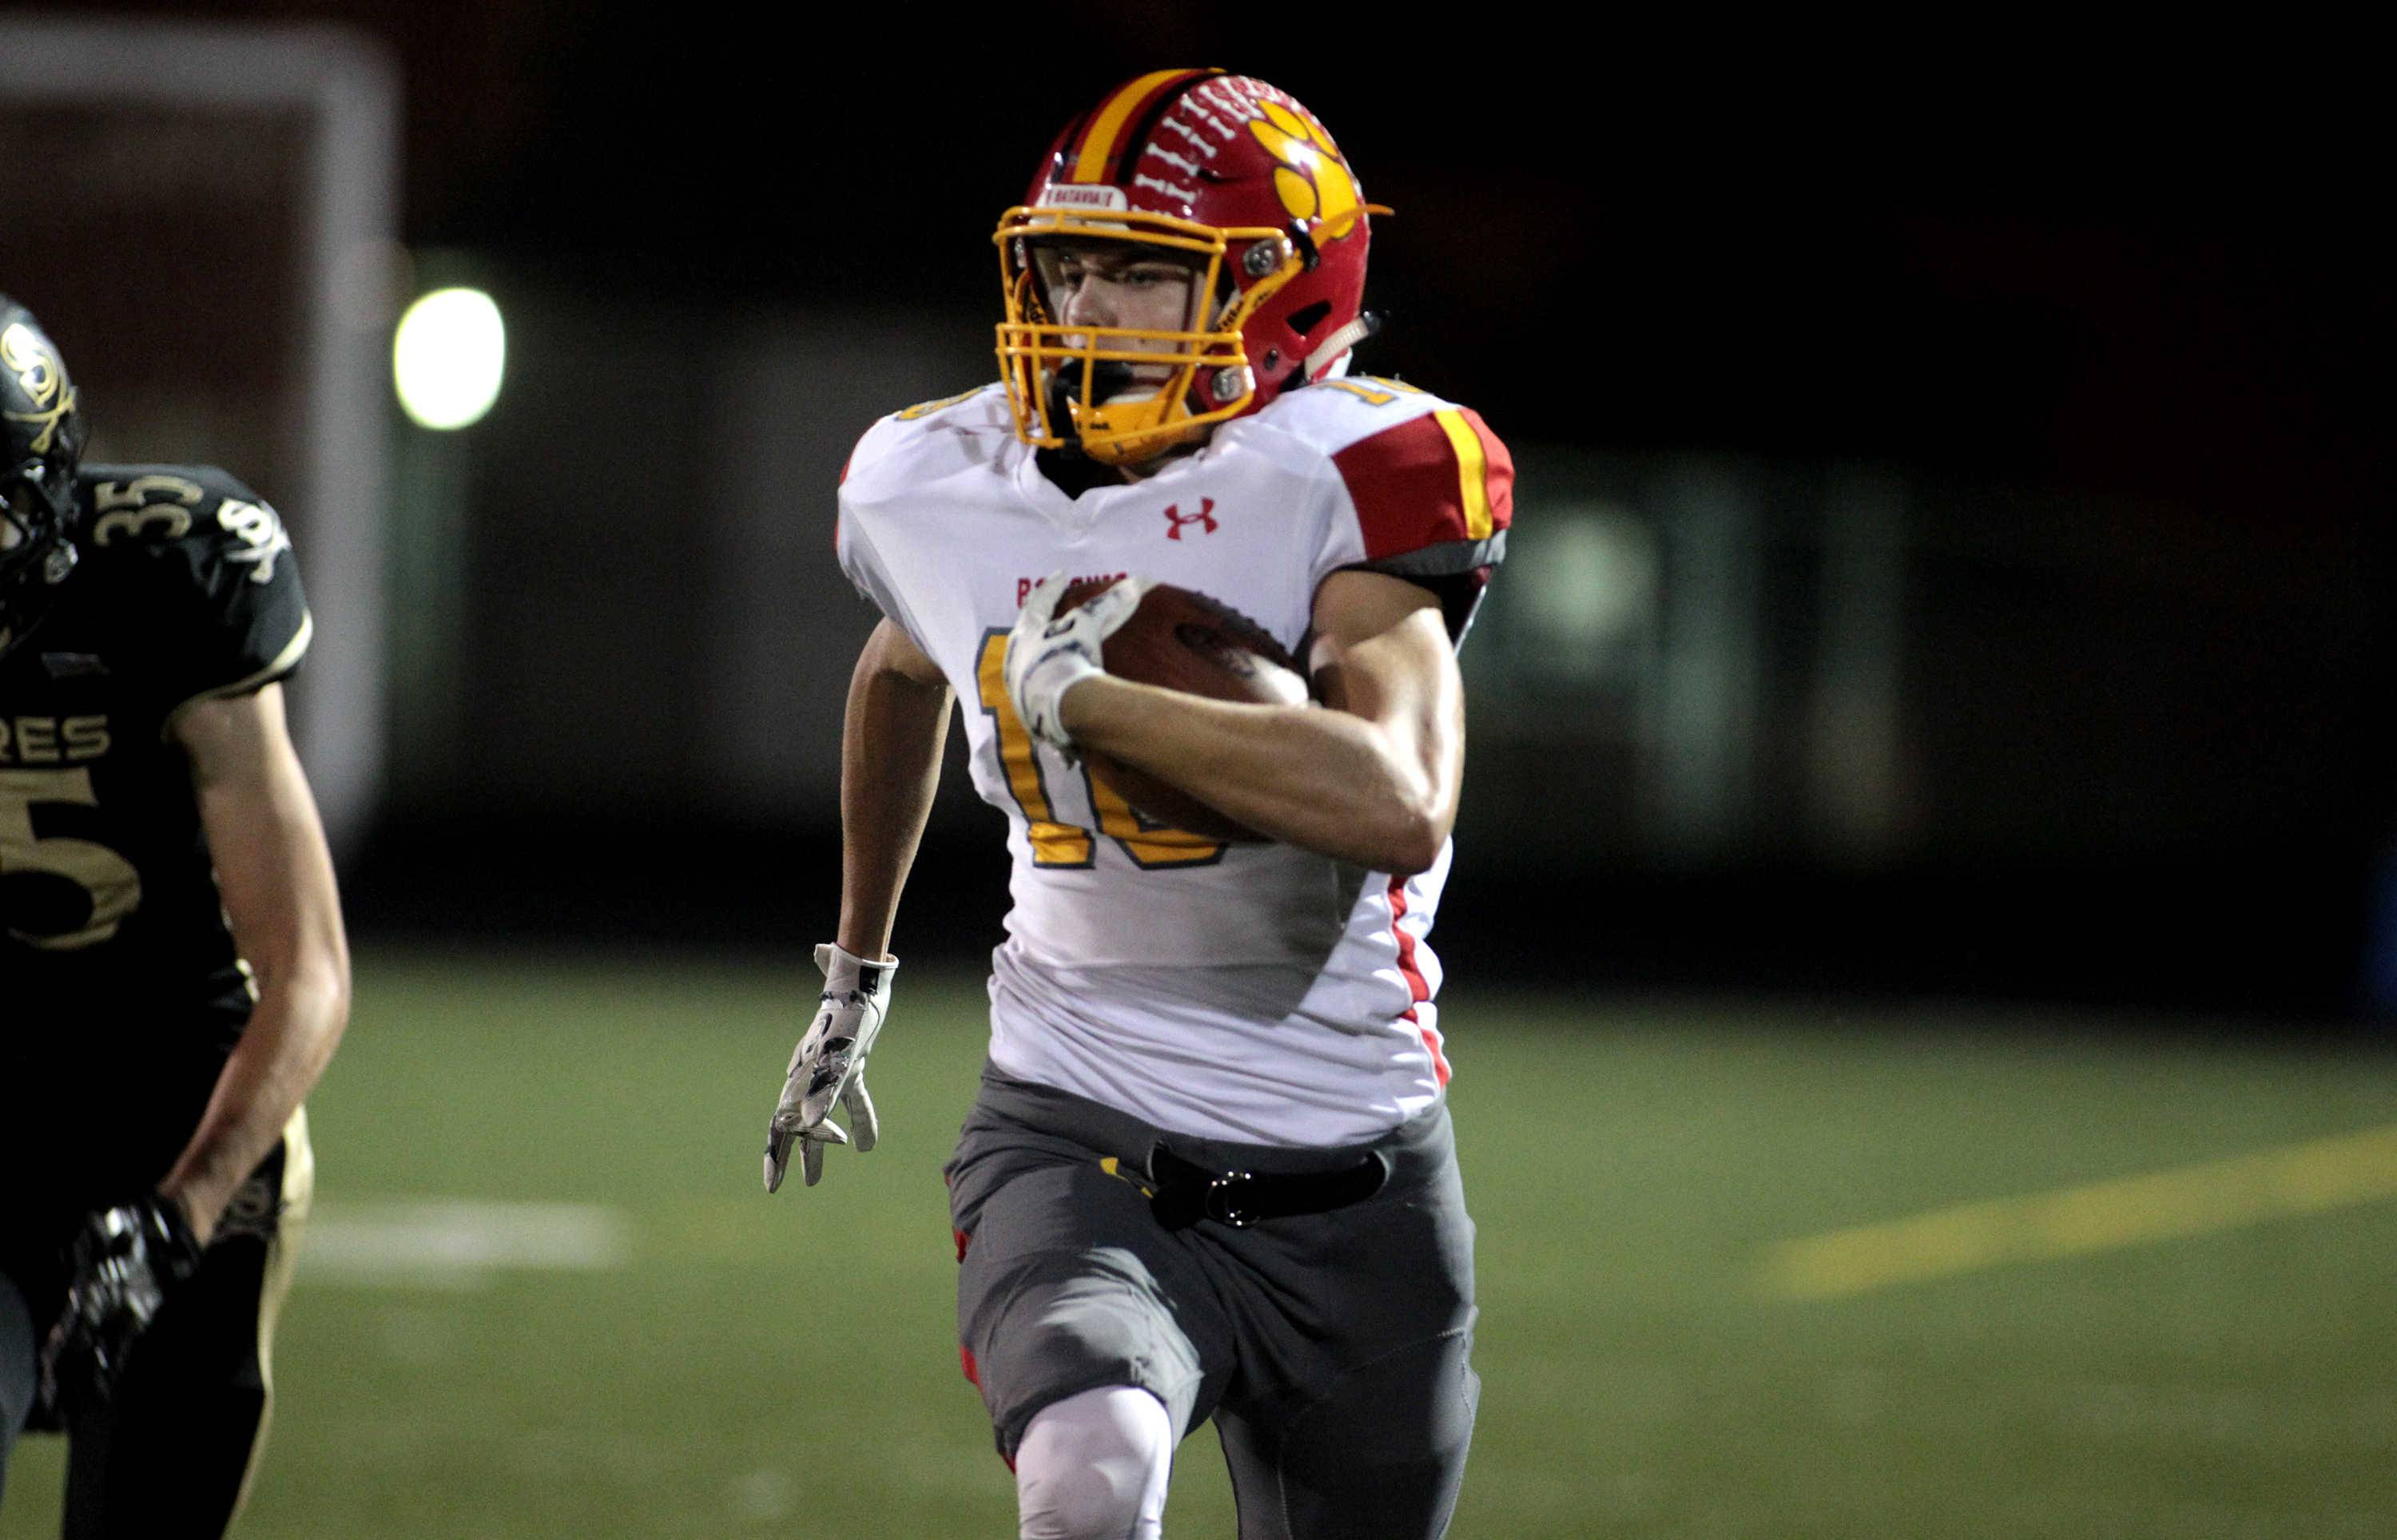 Batavia's Colin Cheaney (18) makes an 88-yard touchdown run during a game at Streamwood Sept. 9.